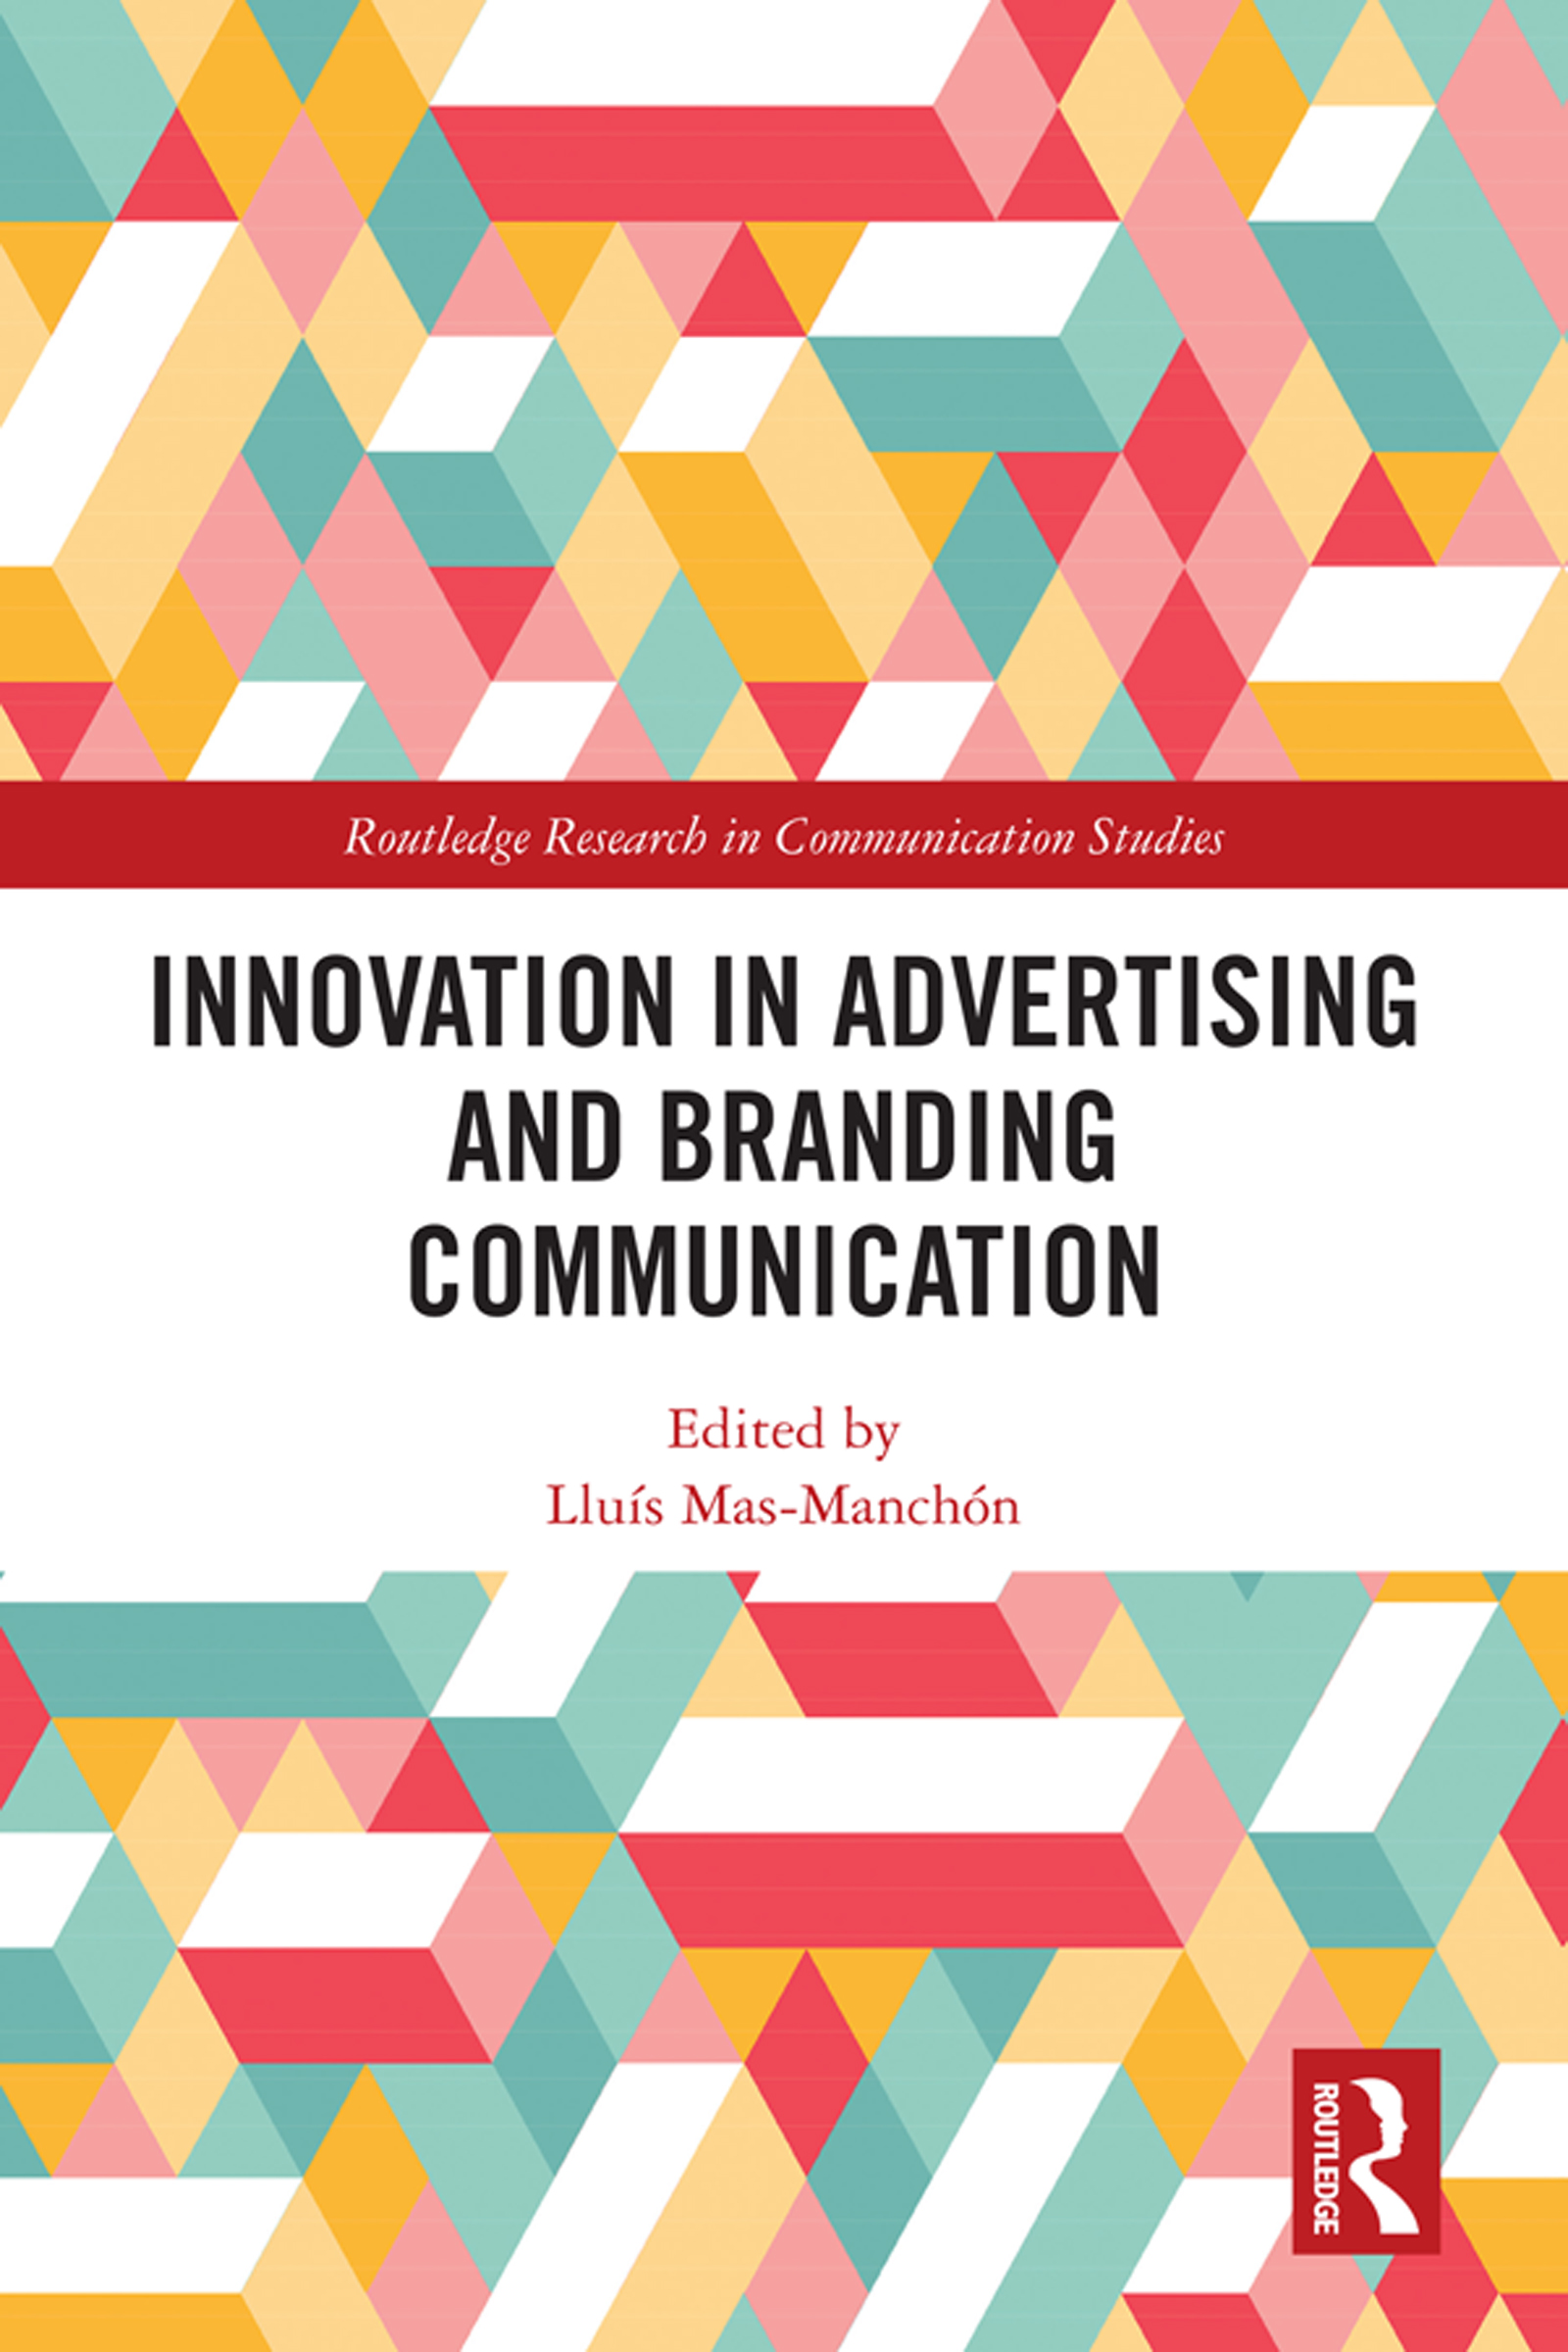 Innovation in Advertising and Branding Communication